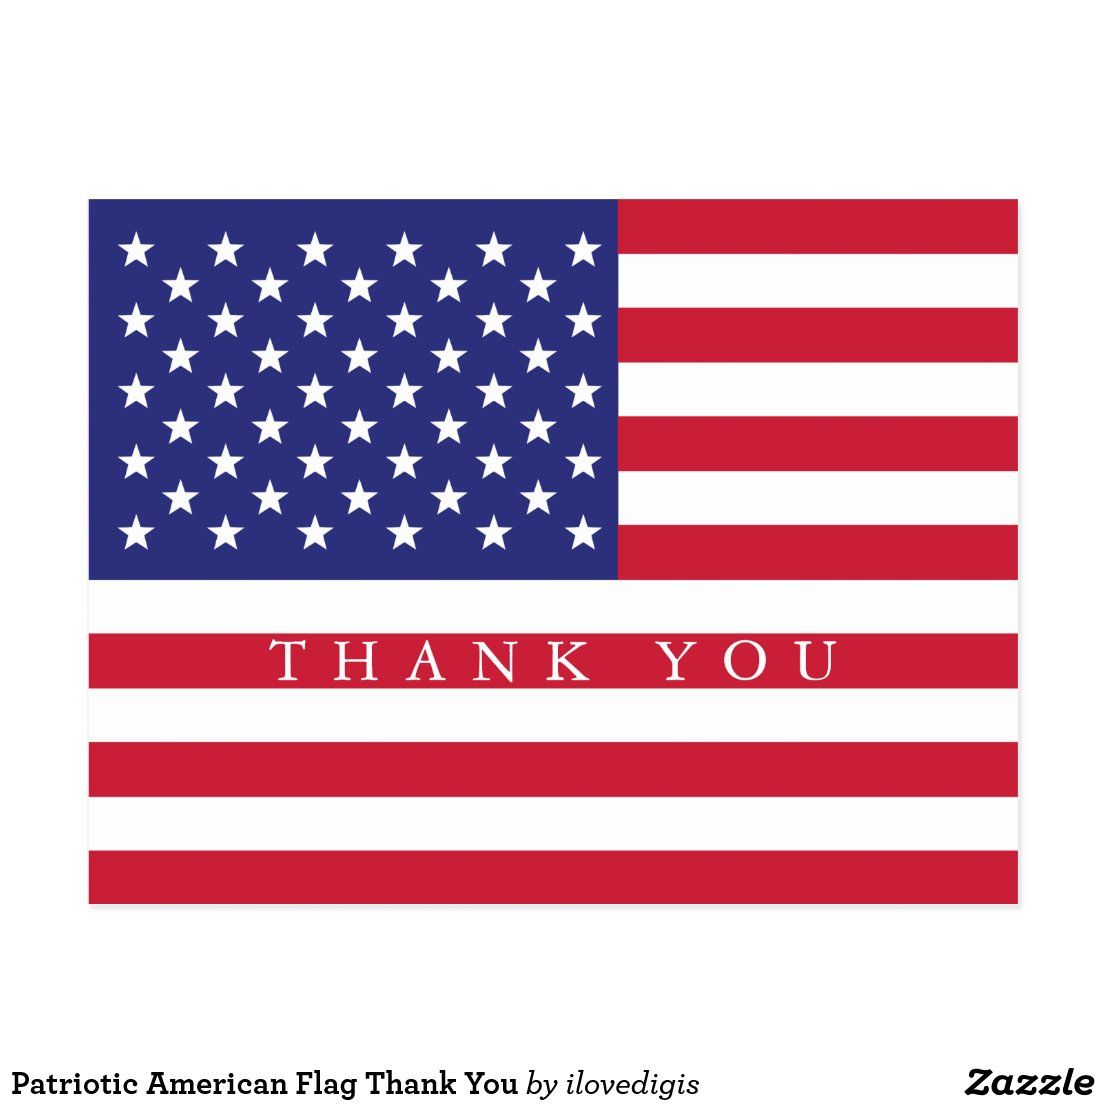 Patriotic American Flag Thank You Postcard Zazzle Com In 2020 Thank You Postcards American Flag Patriotic